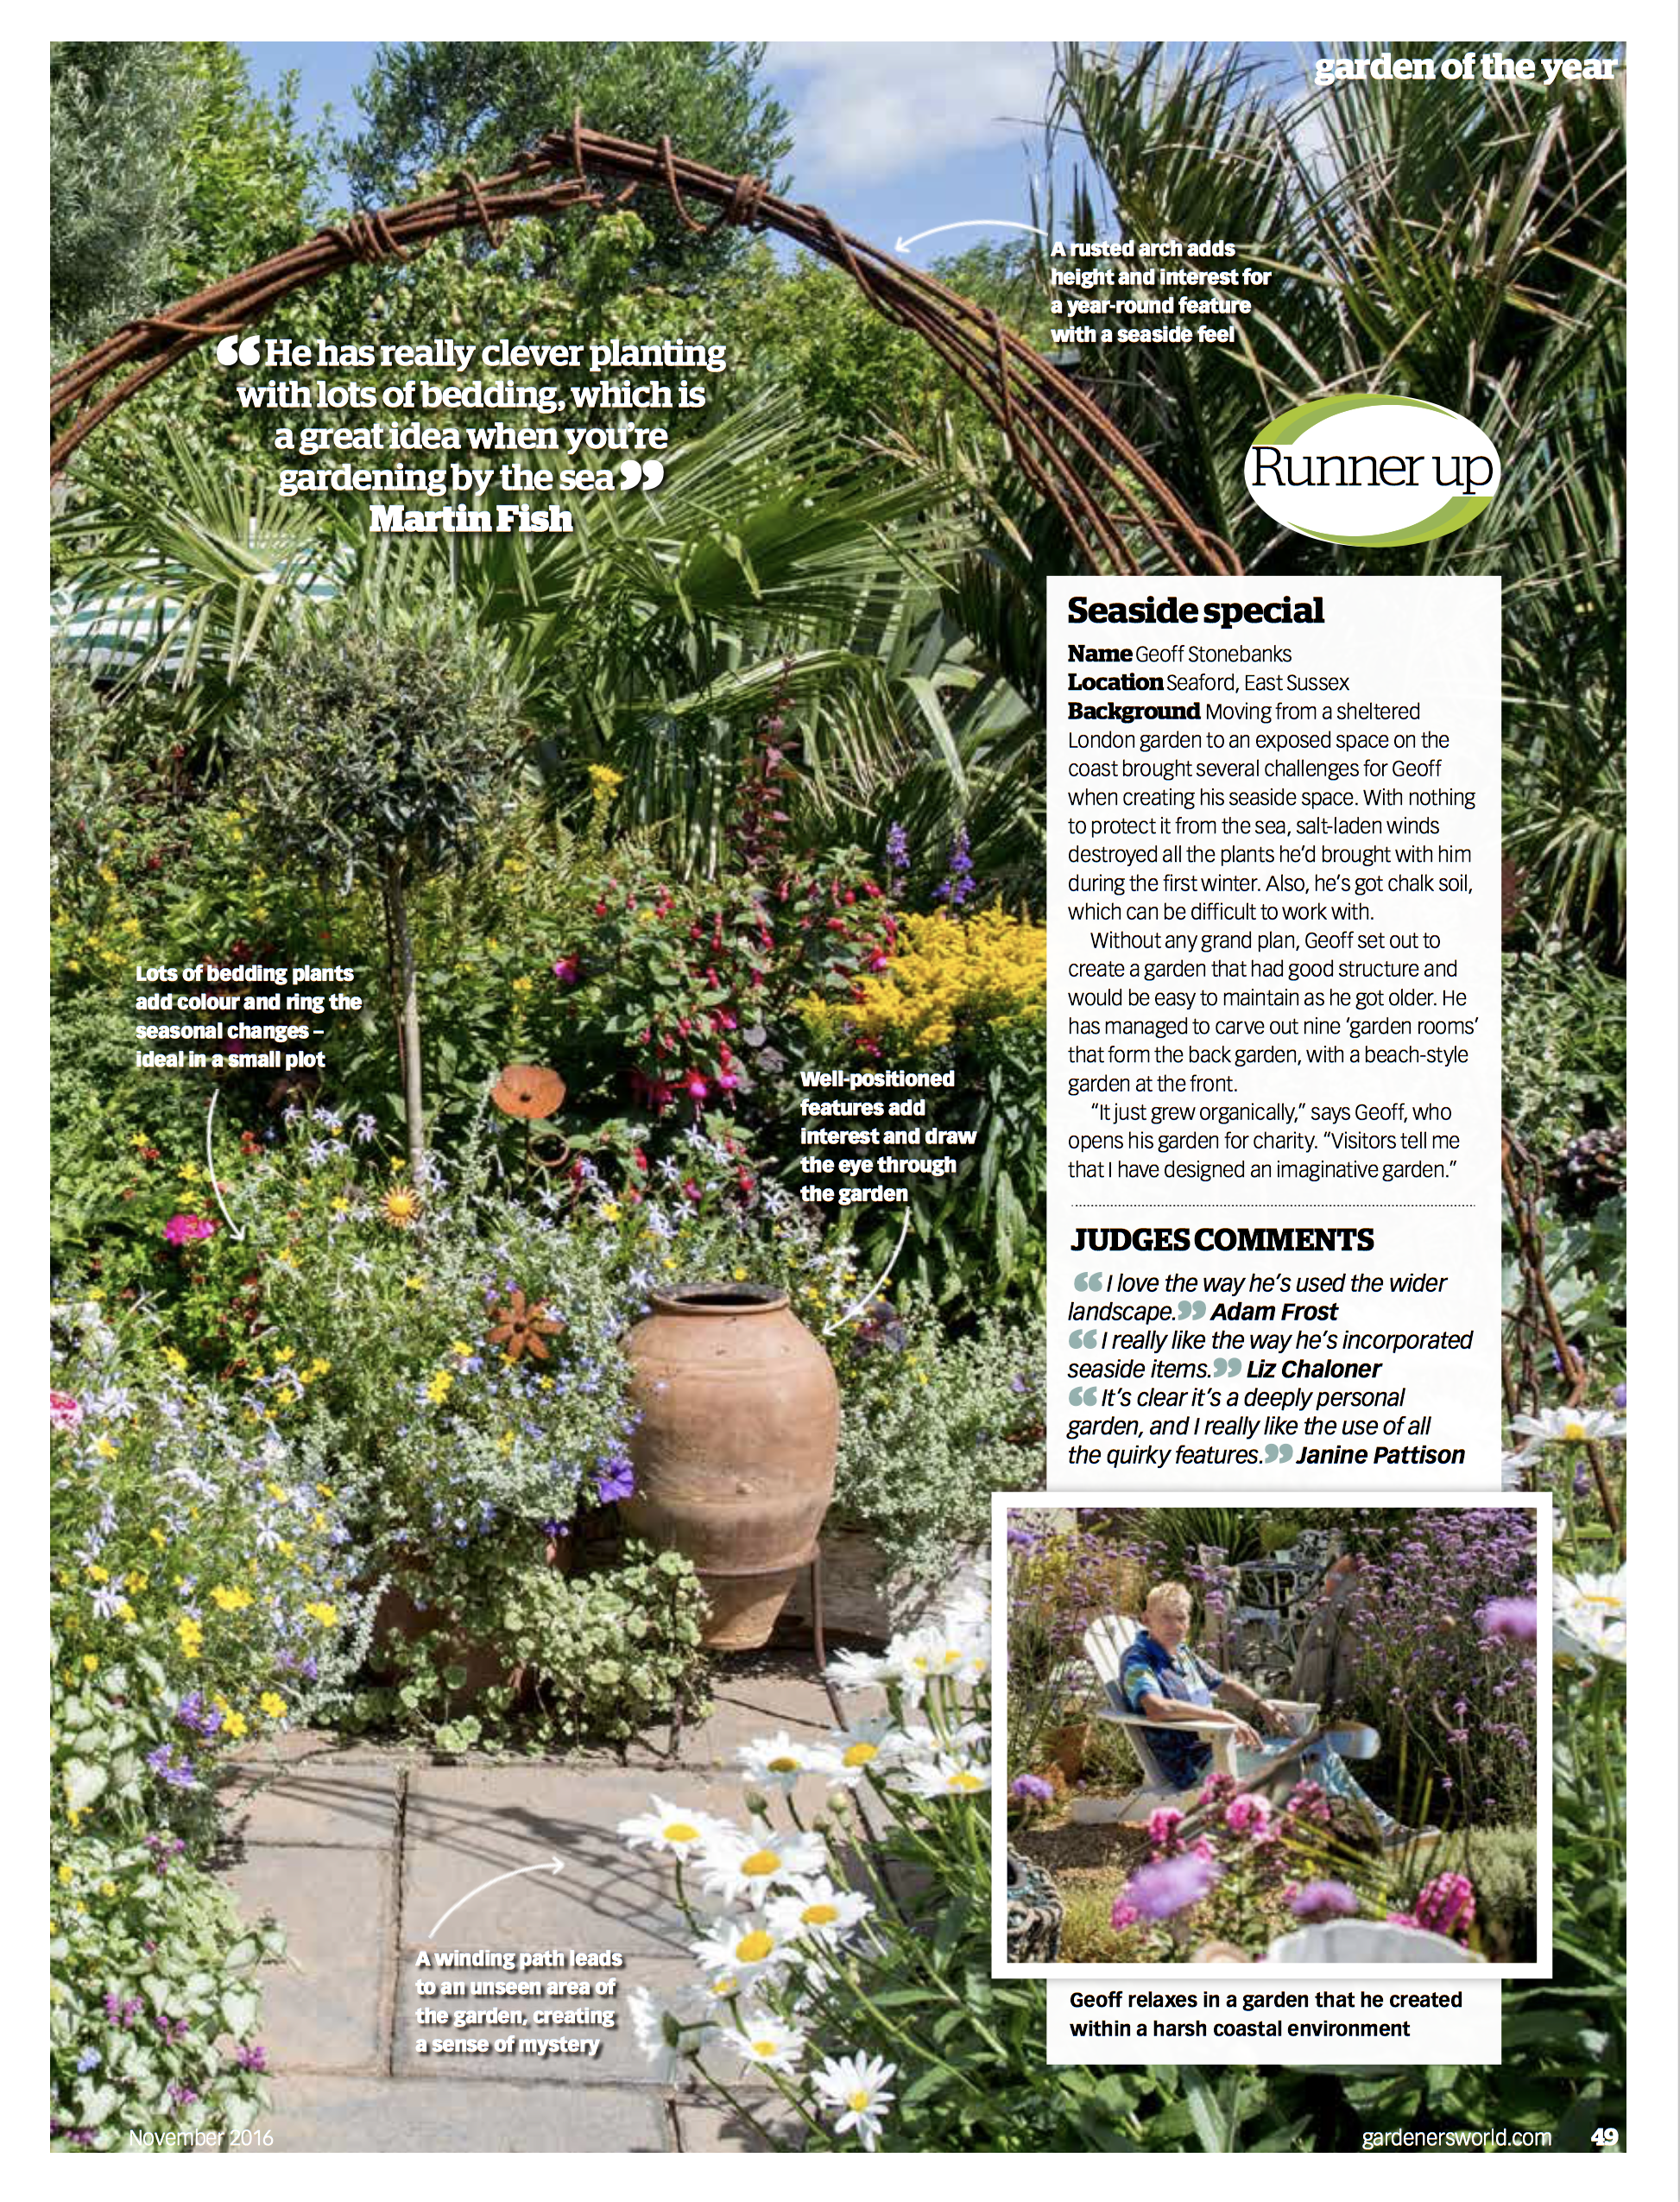 I Was Thrilled To See The Whole Page Article About The Garden On Page 49.